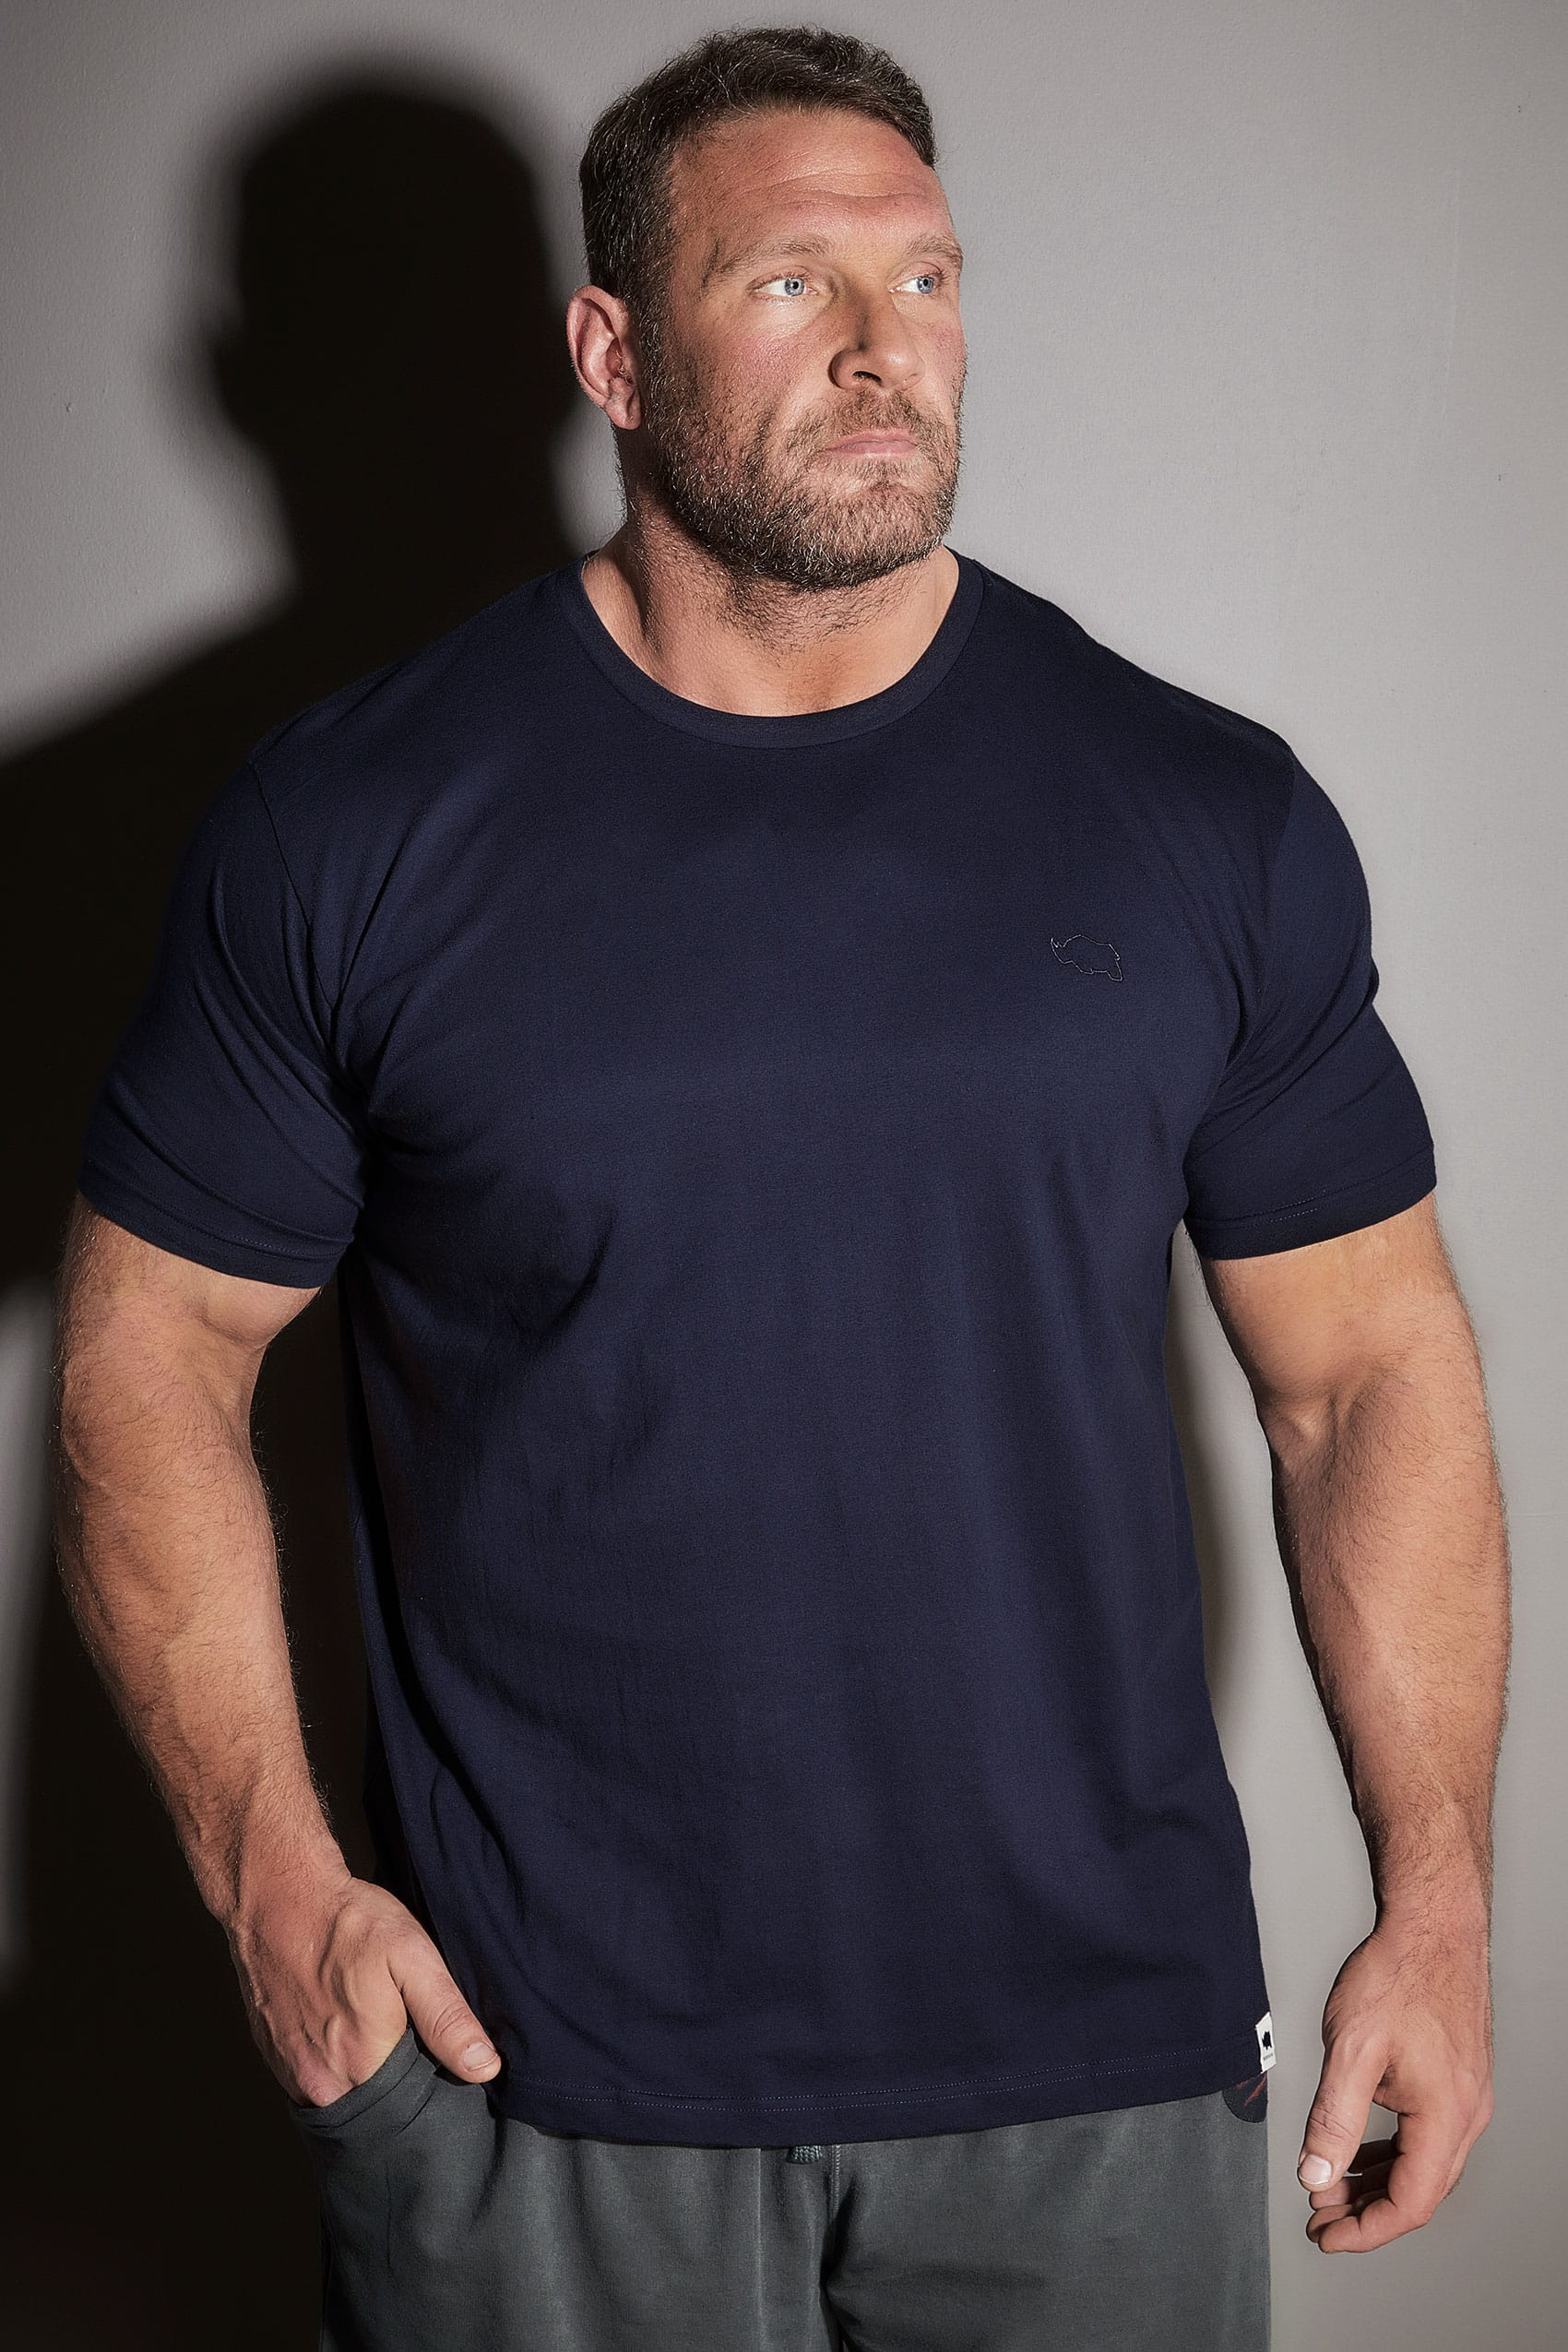 63296bffbde9 BadRhino Navy Basic Plain Crew Neck T-Shirt Extra large sizes M